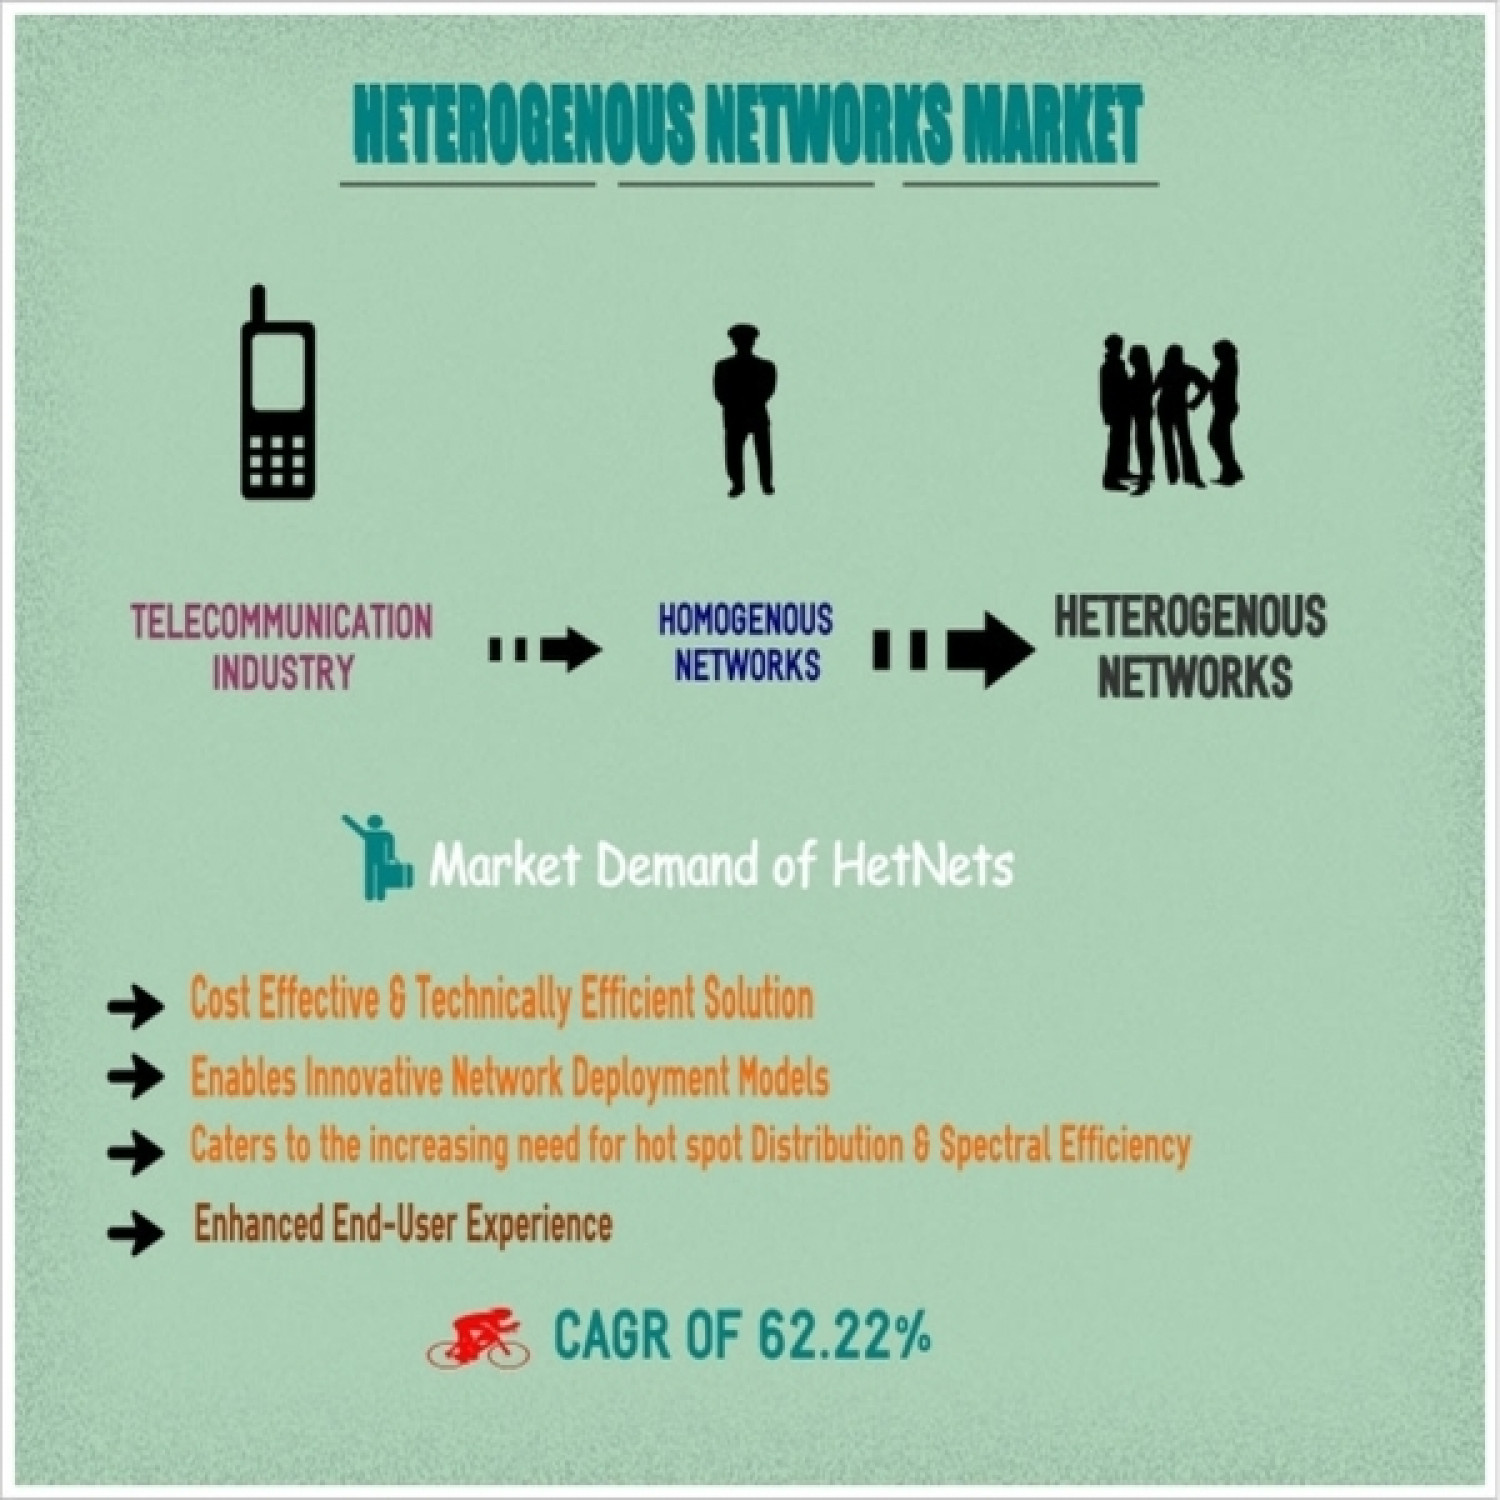 Market Research - Heterogenous Networks Market : MarketsandMarkets Infographic